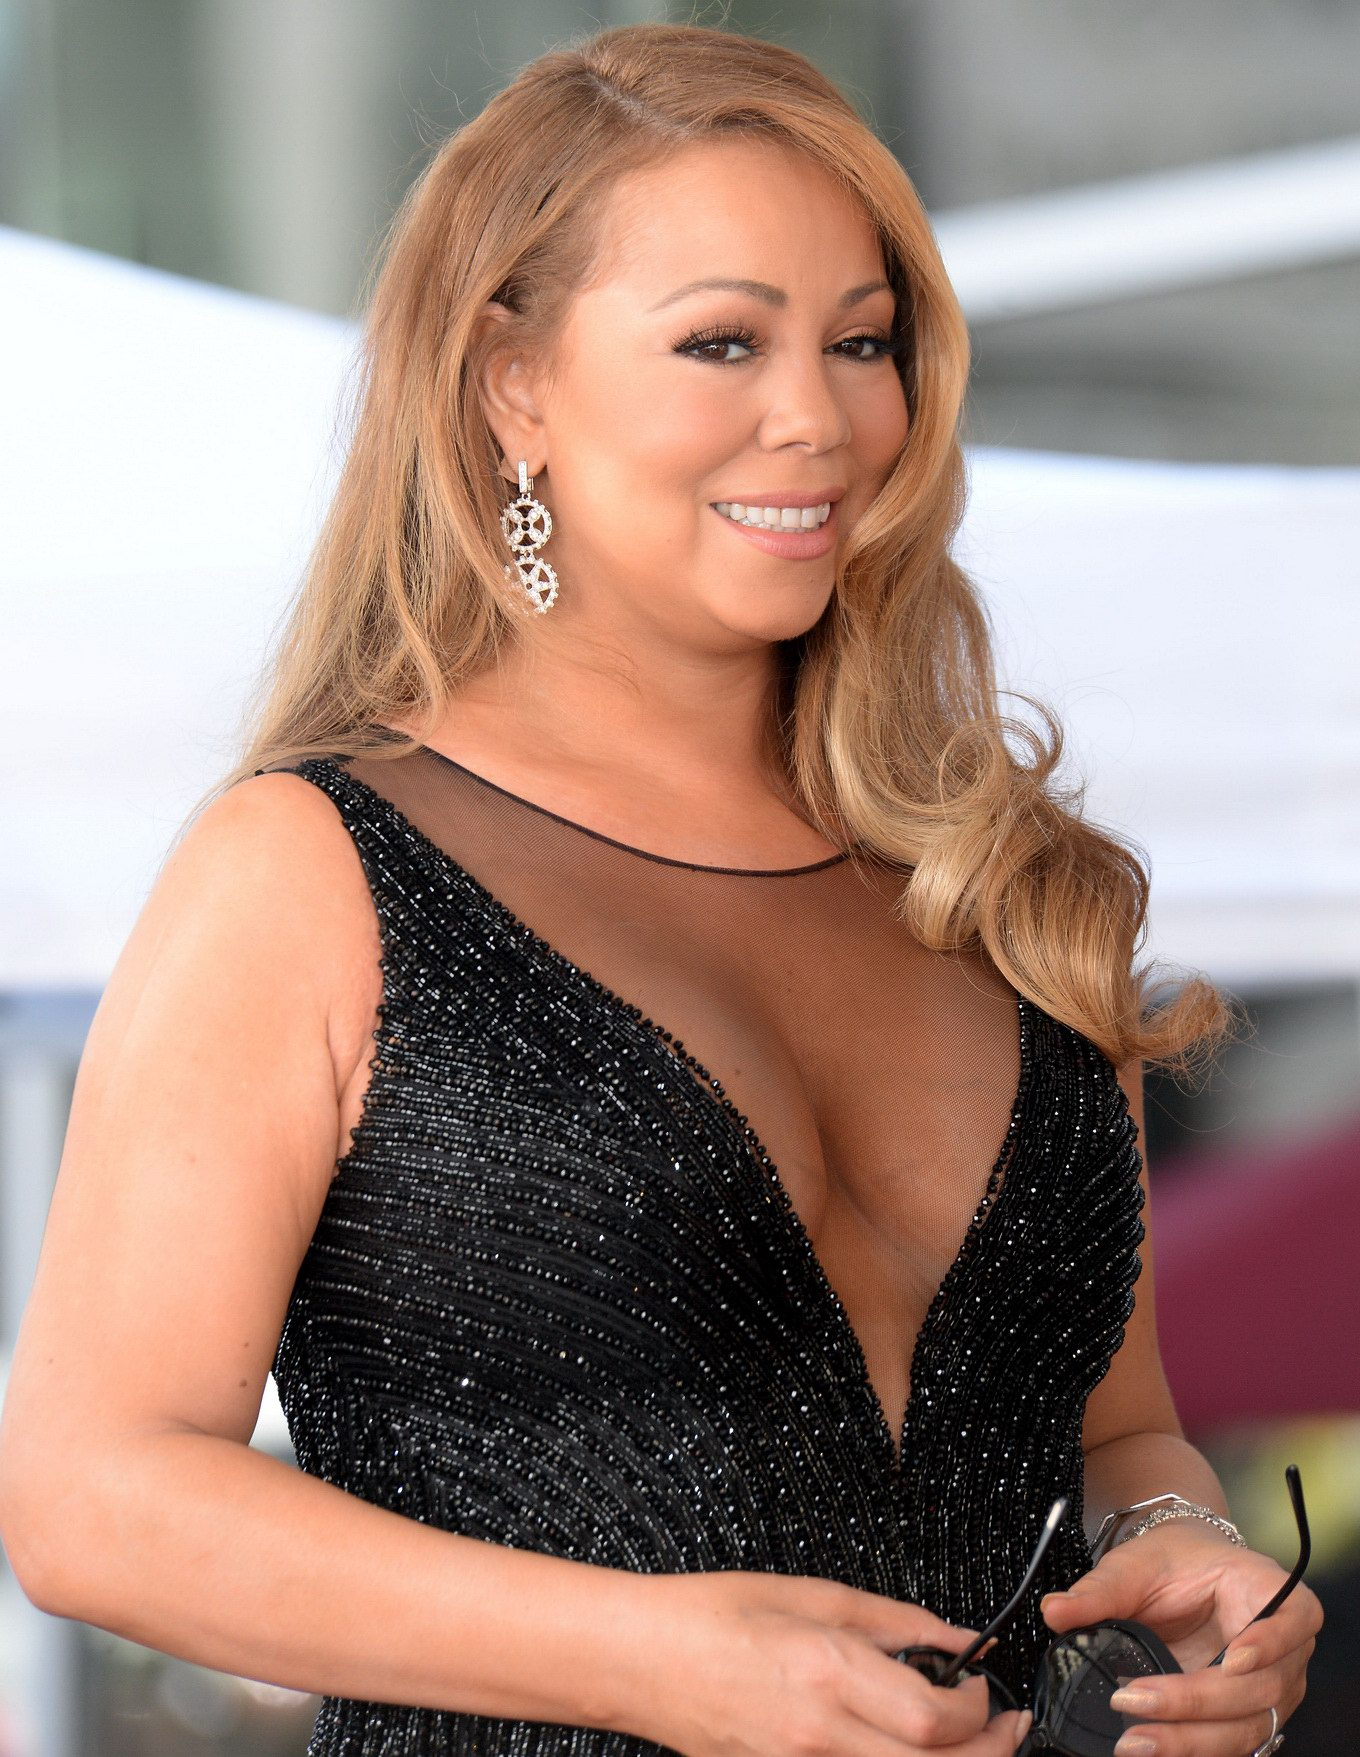 That can Mariah carey big cleavage